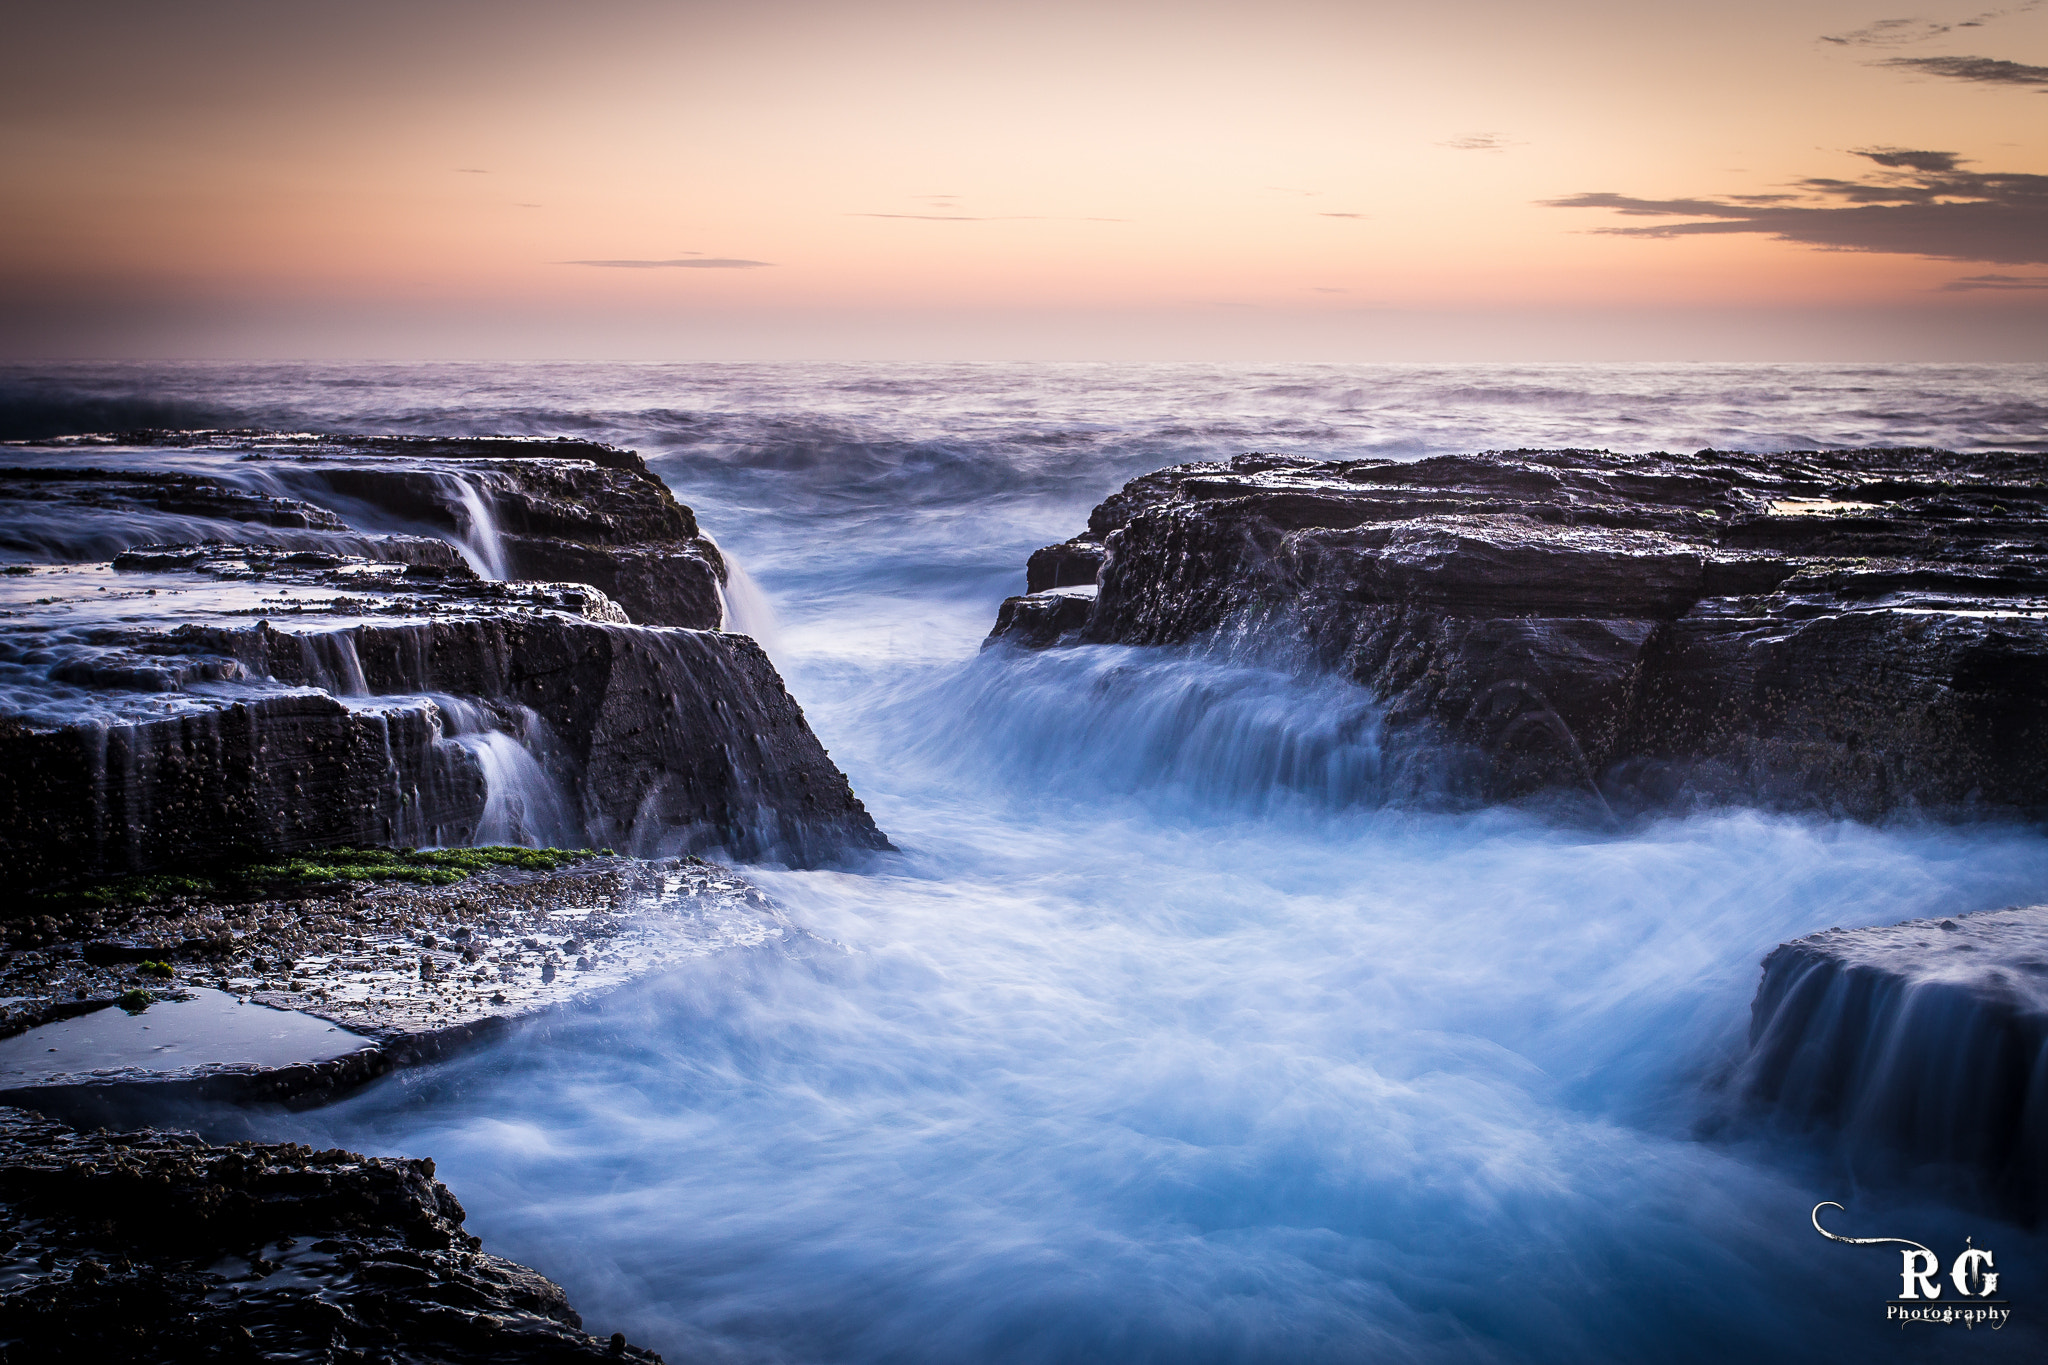 Photograph Northern Beaches by Ron Gabriel on 500px